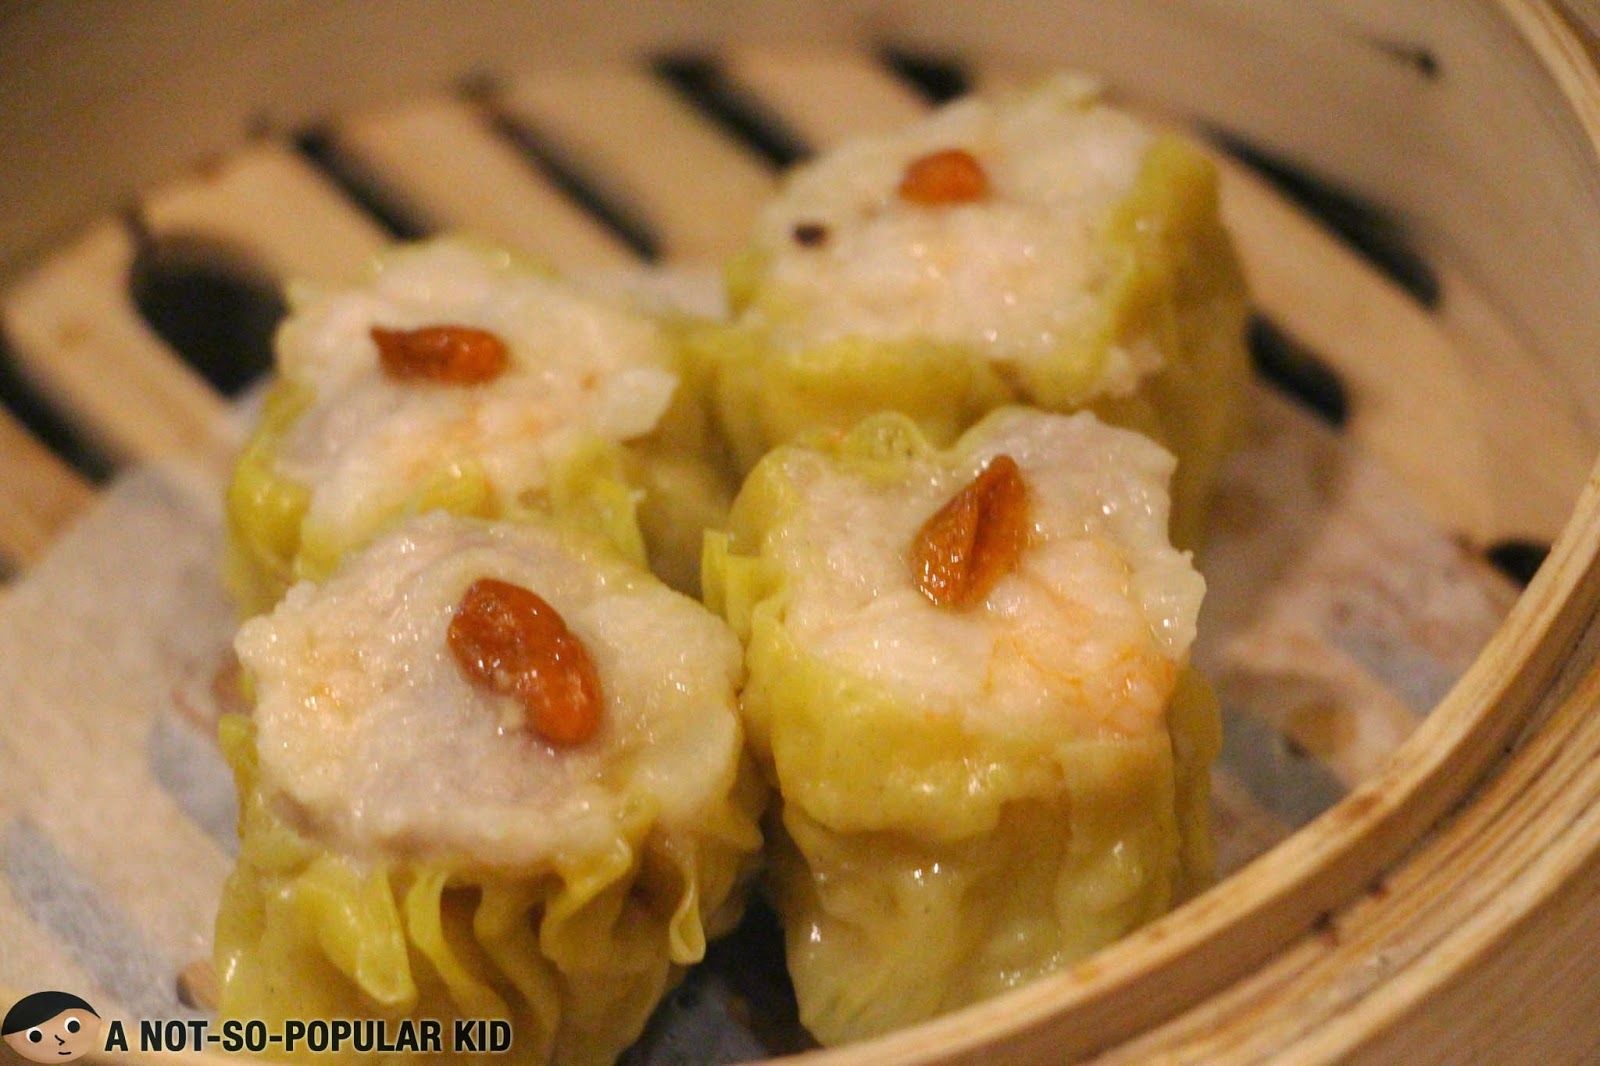 Pork Dumpling with Shrimp (or commonly termed as Shrimp Siomai) of Tim Ho Wan